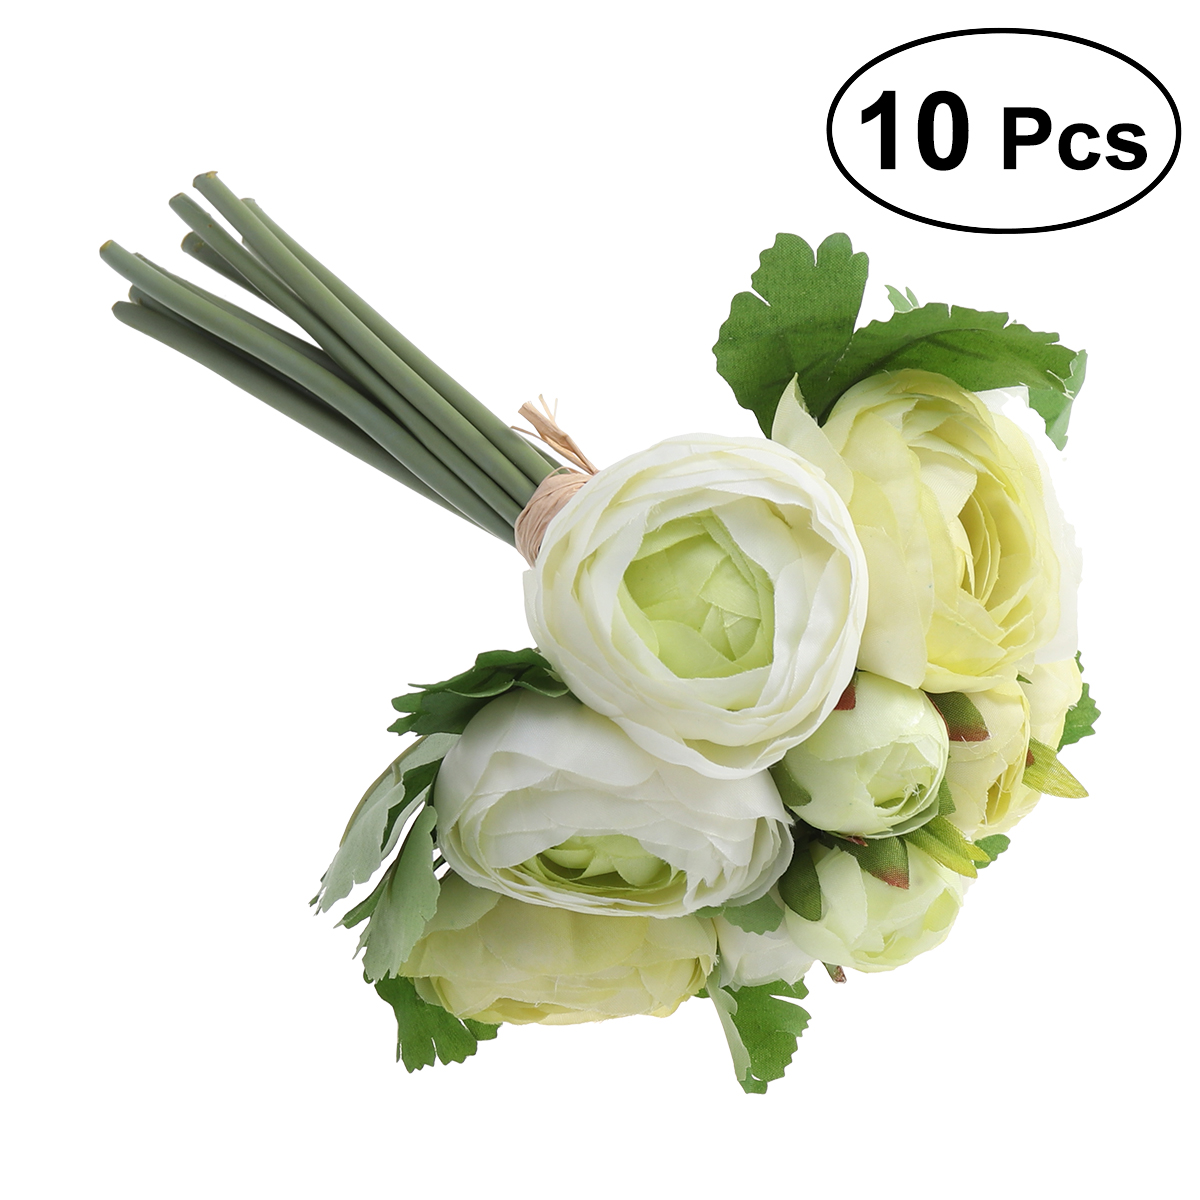 Artificial Flowers Camellia Bridal Wedding Bouquet Bridesmaid Bride Toss Bouquet Home Decoration